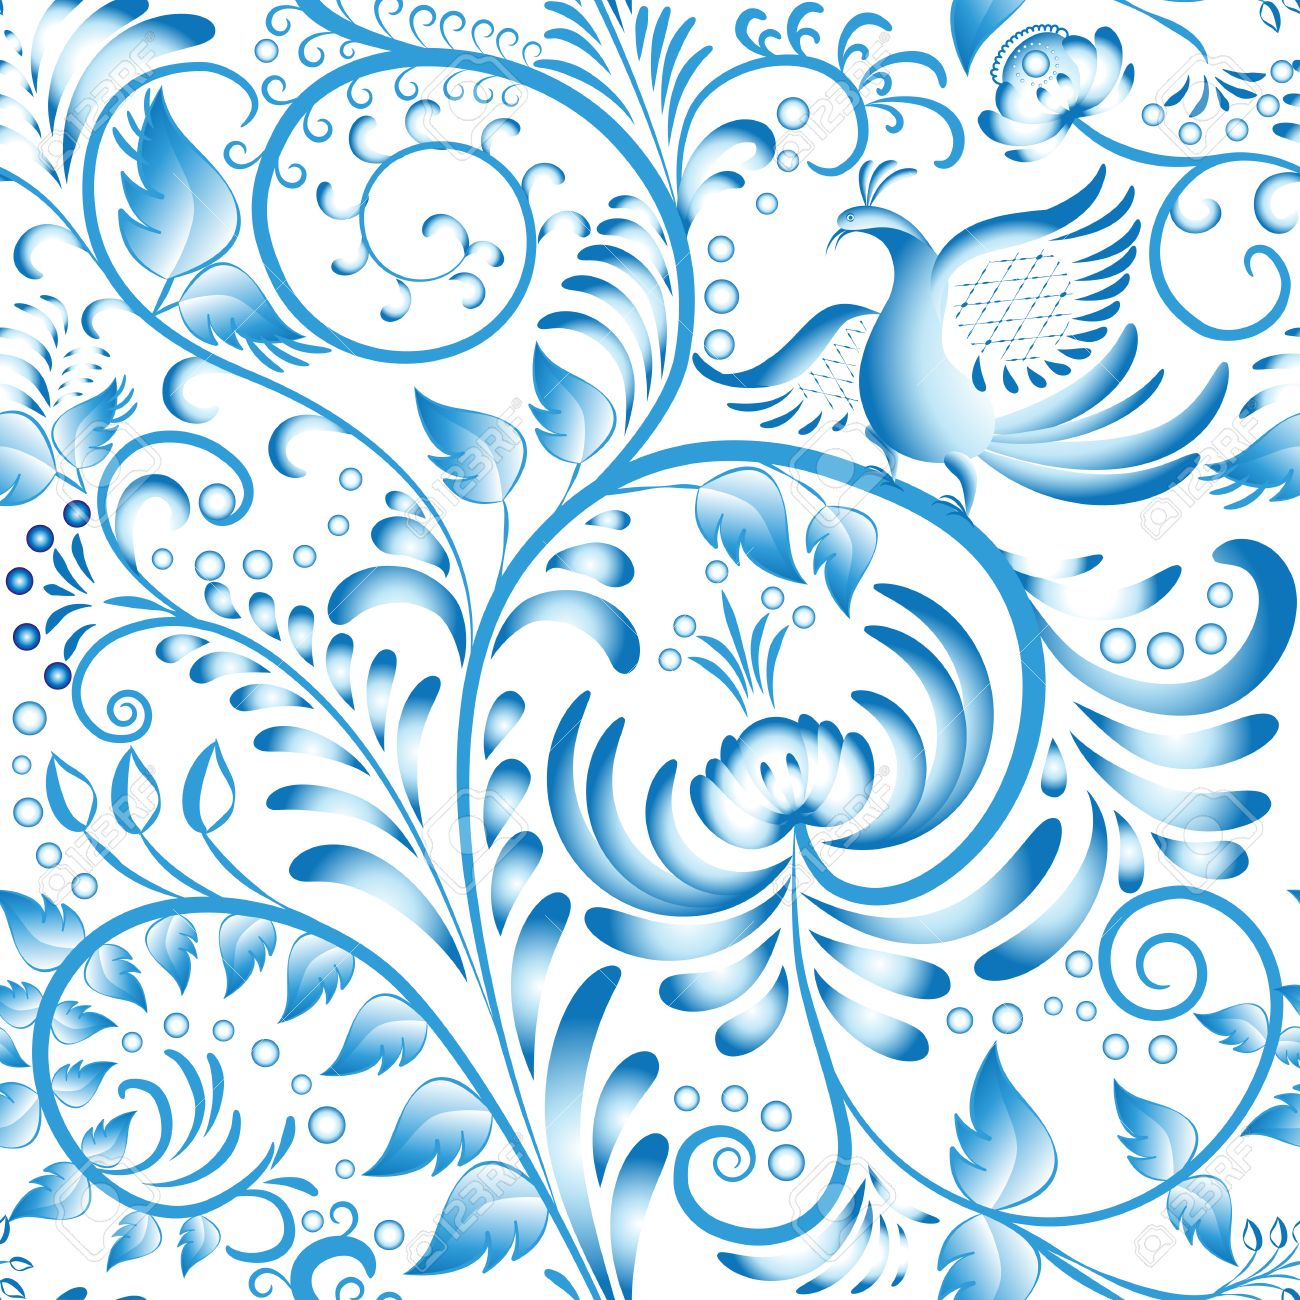 seamless floral pattern blue painted in gzhel style with flowers